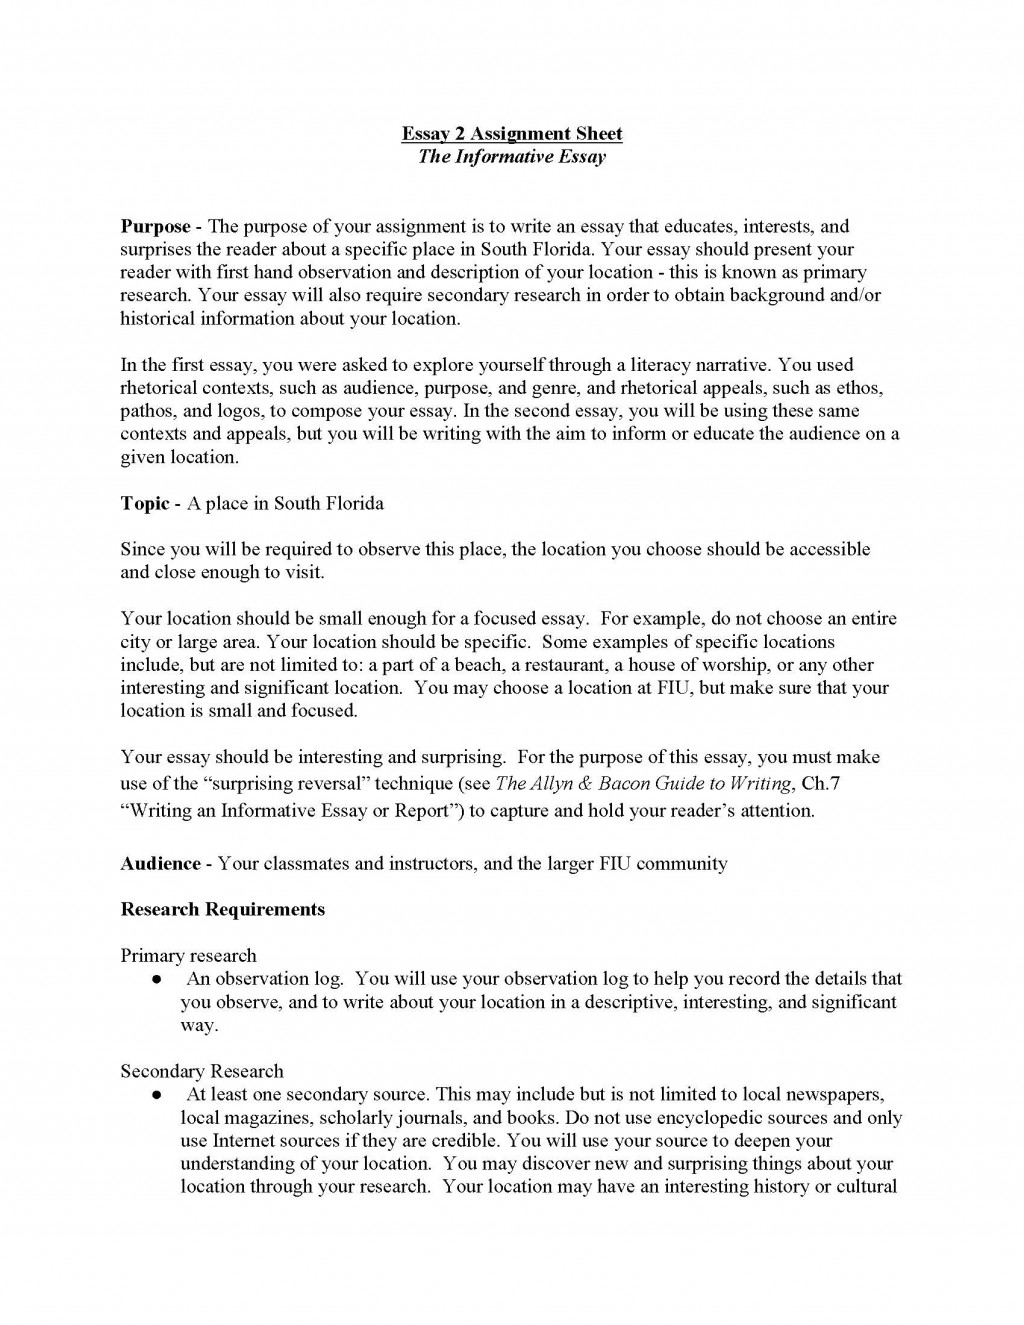 008 Informative Essay Unit Assignment Page 1 Example Informational Unbelievable Topics For 5th Grade Expository 4th Large